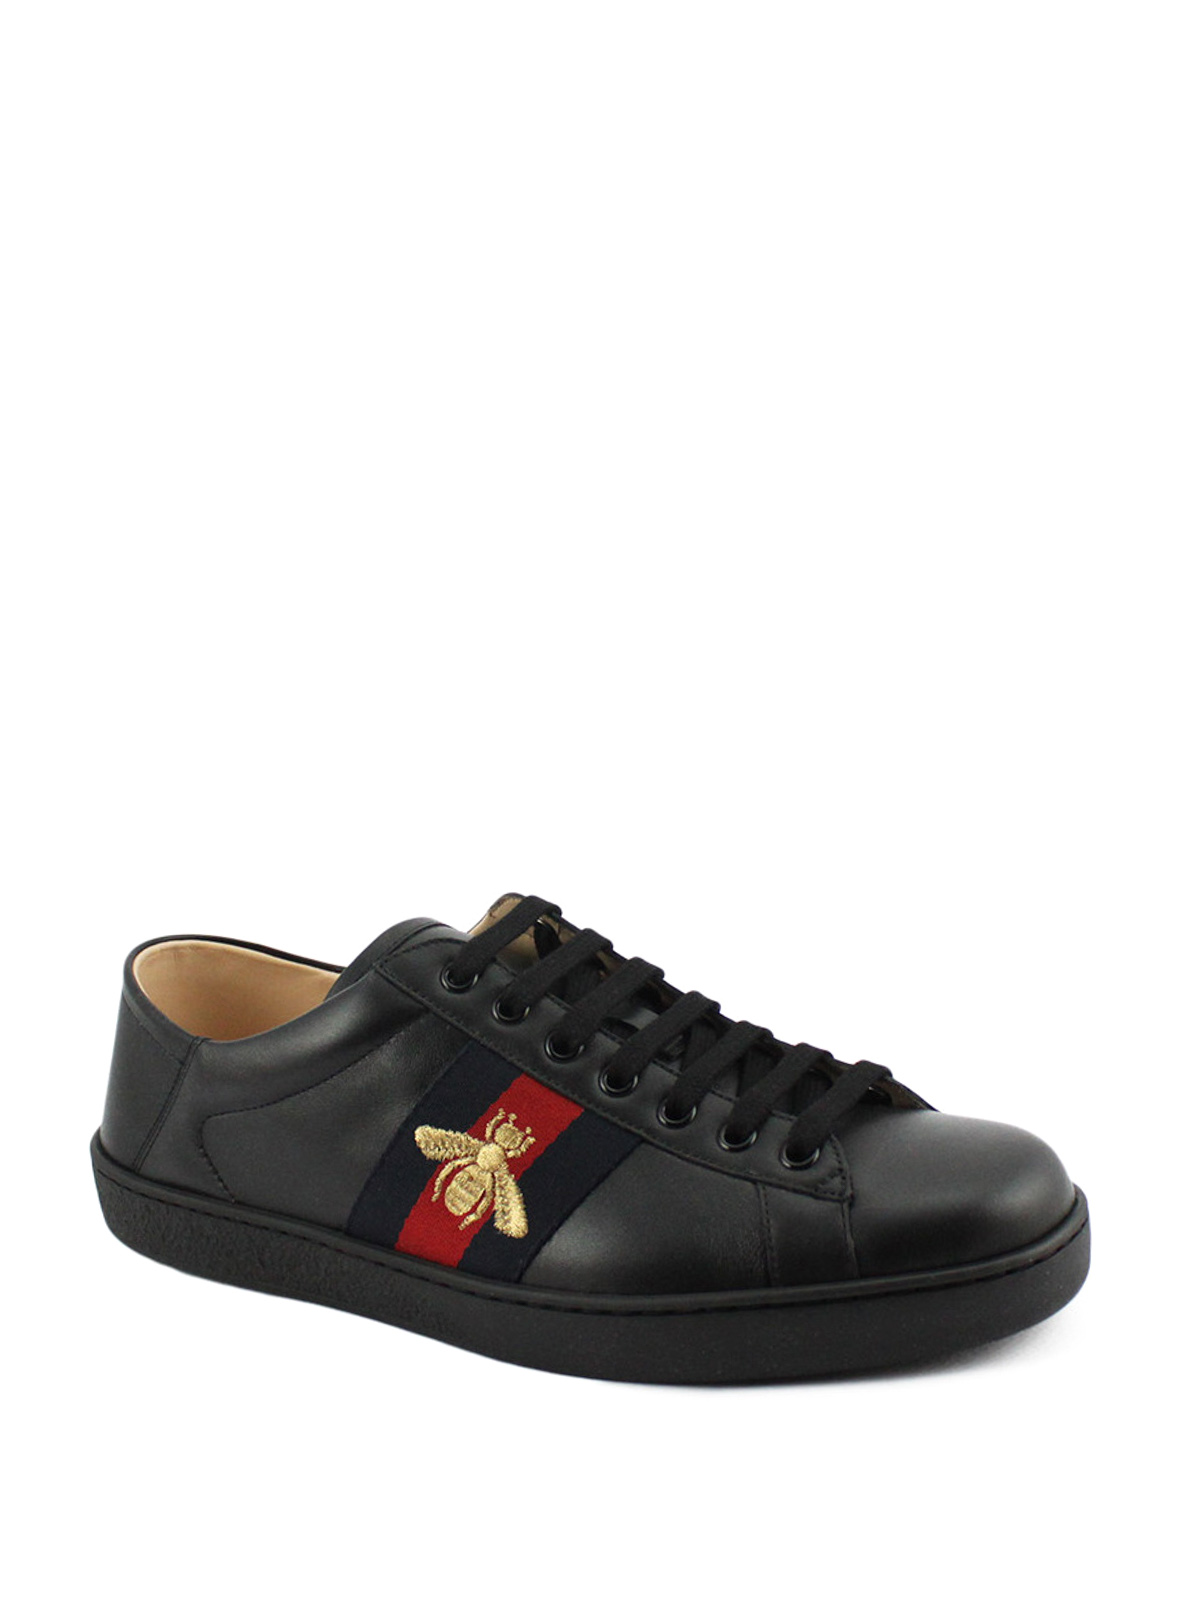 Gucci - Ace bee embroidery leather